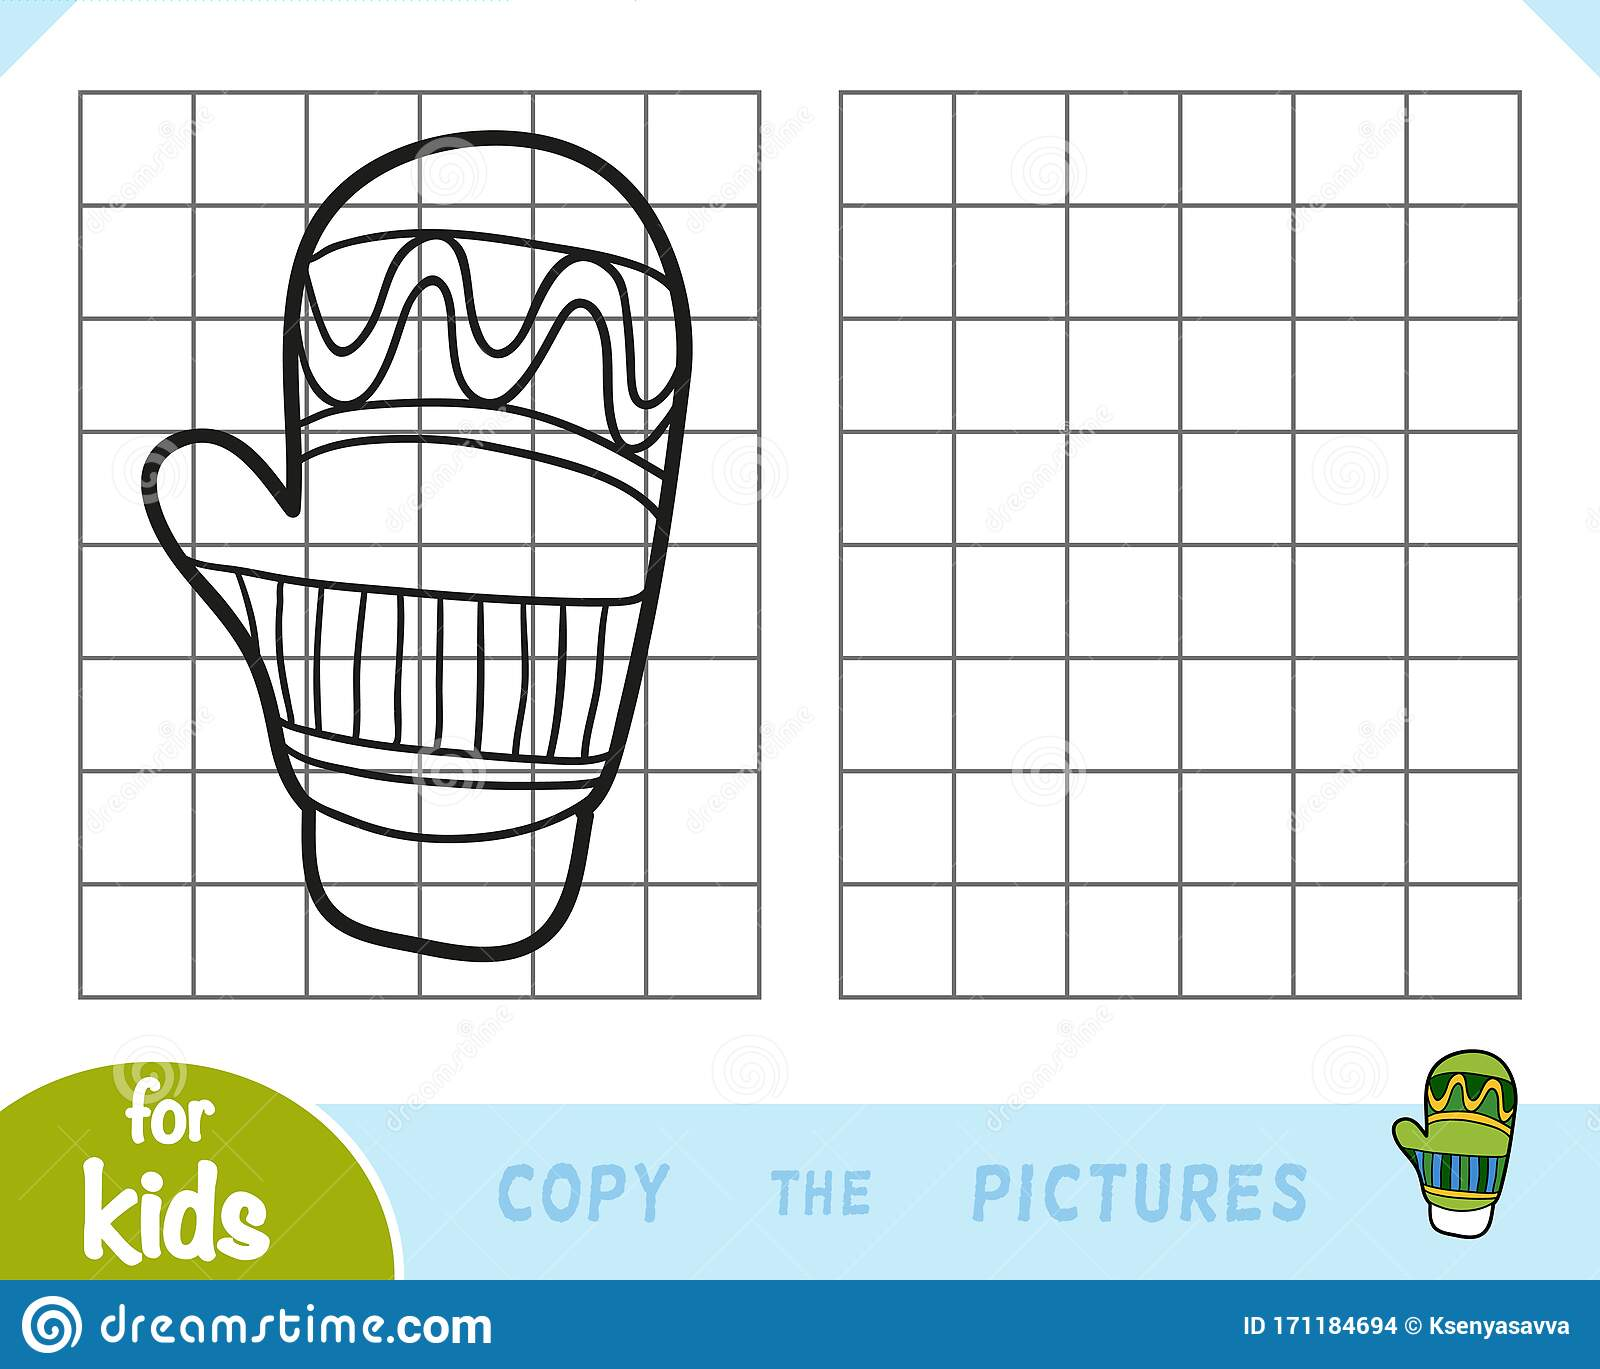 Copy The Picture Game For Children Mitten Stock Vector